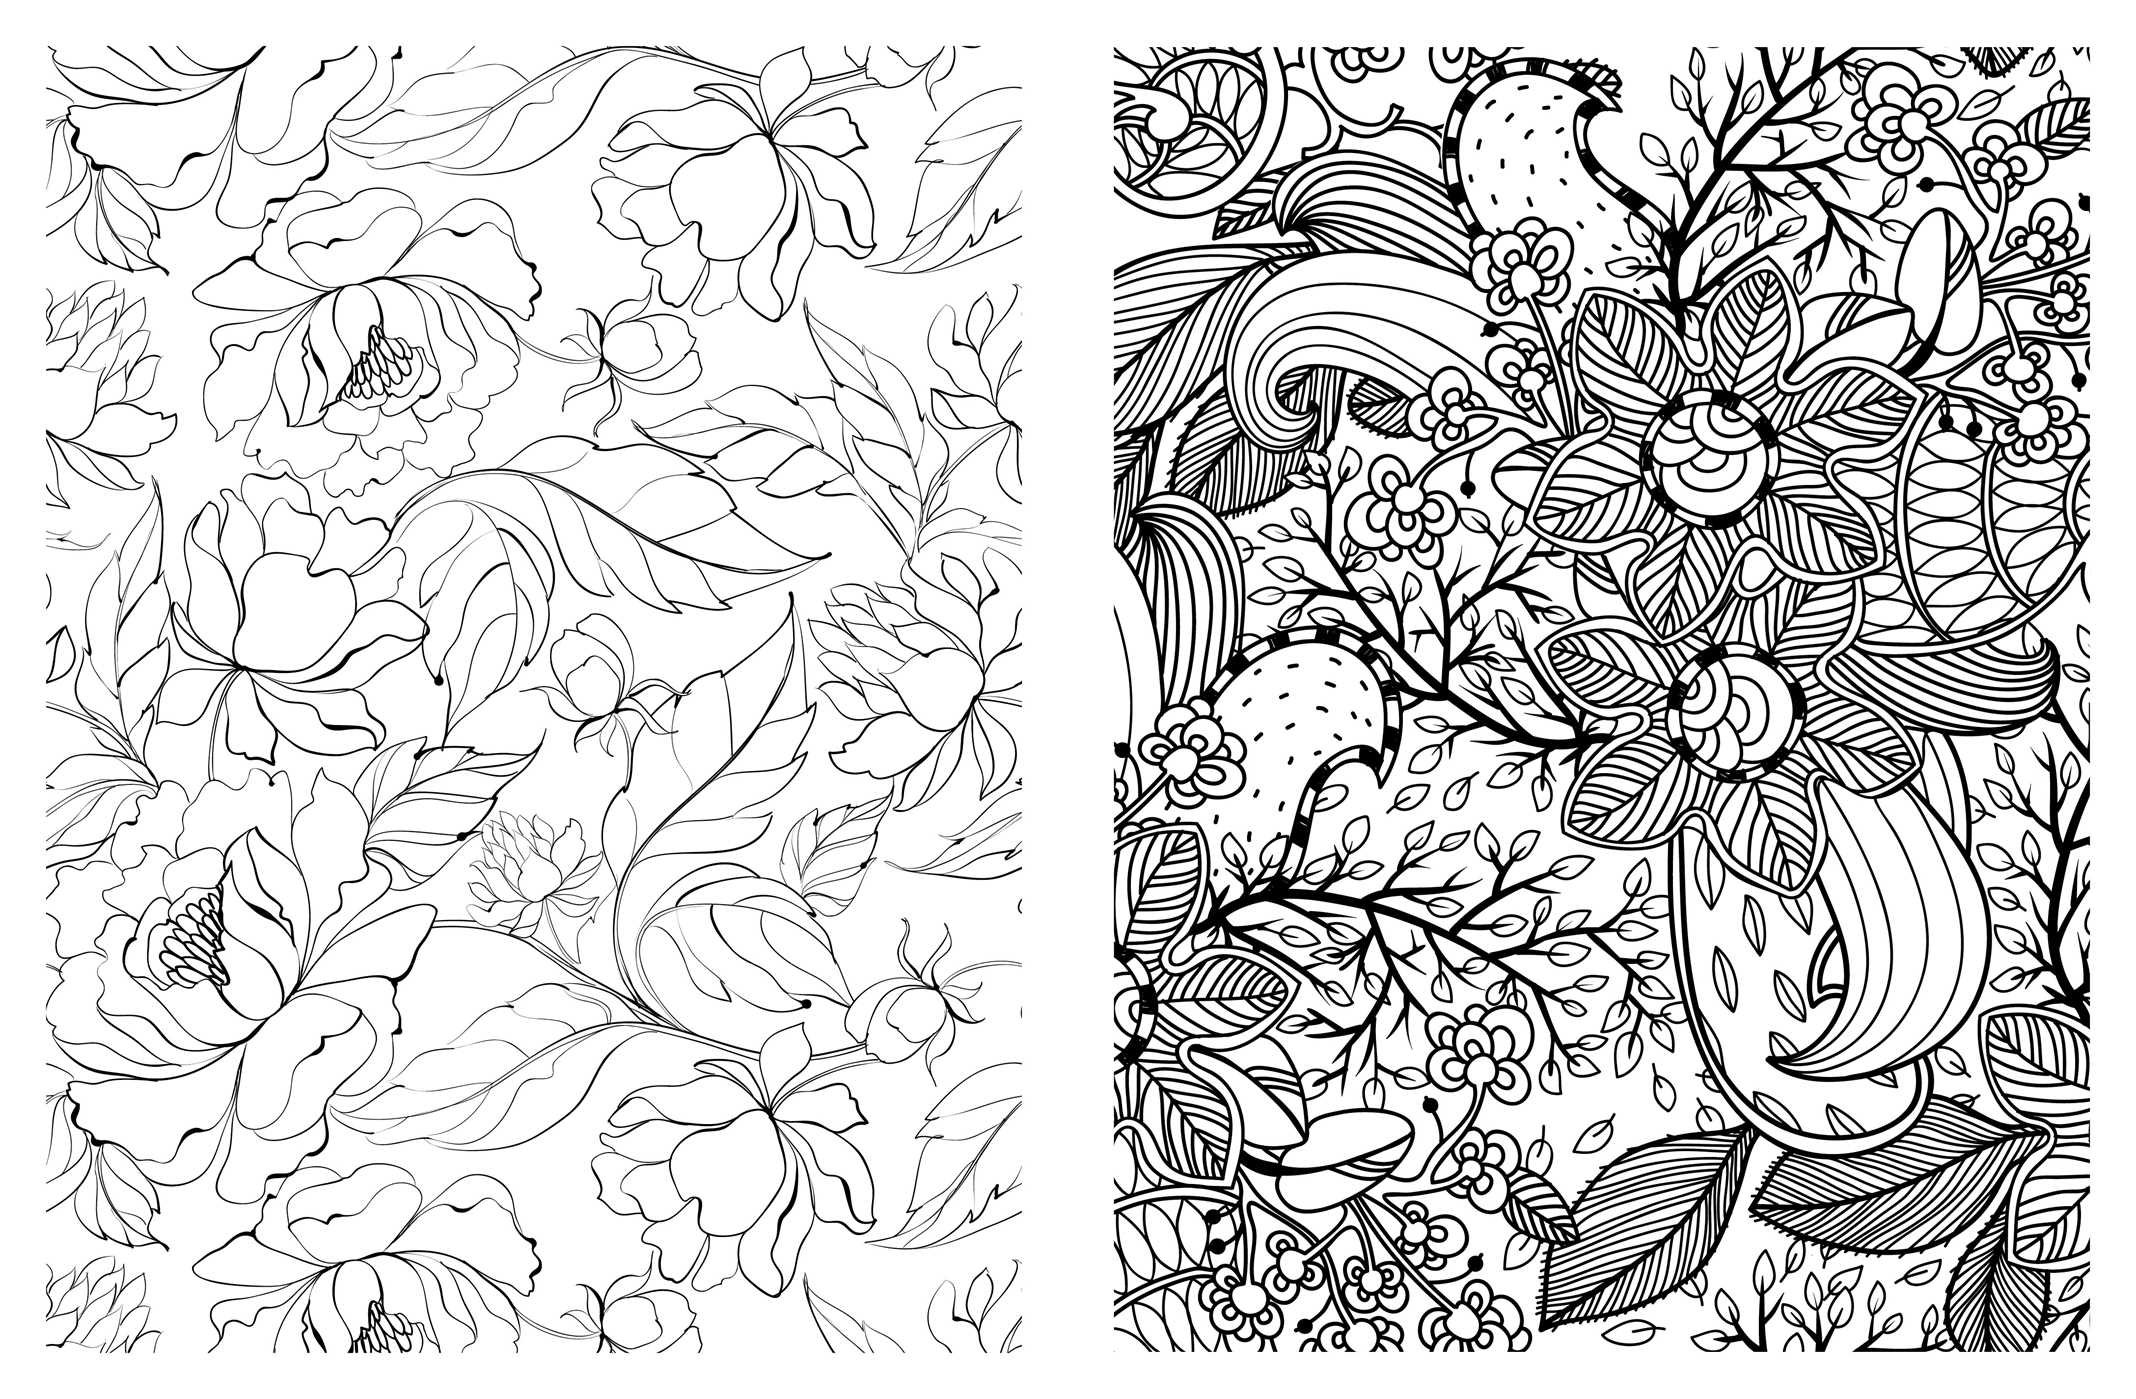 Publishers for adult coloring books - Amazon Com Posh Adult Coloring Book Pretty Designs For Fun Relaxation Posh Coloring Books 9781449458751 Andrews Mcmeel Publishing Books